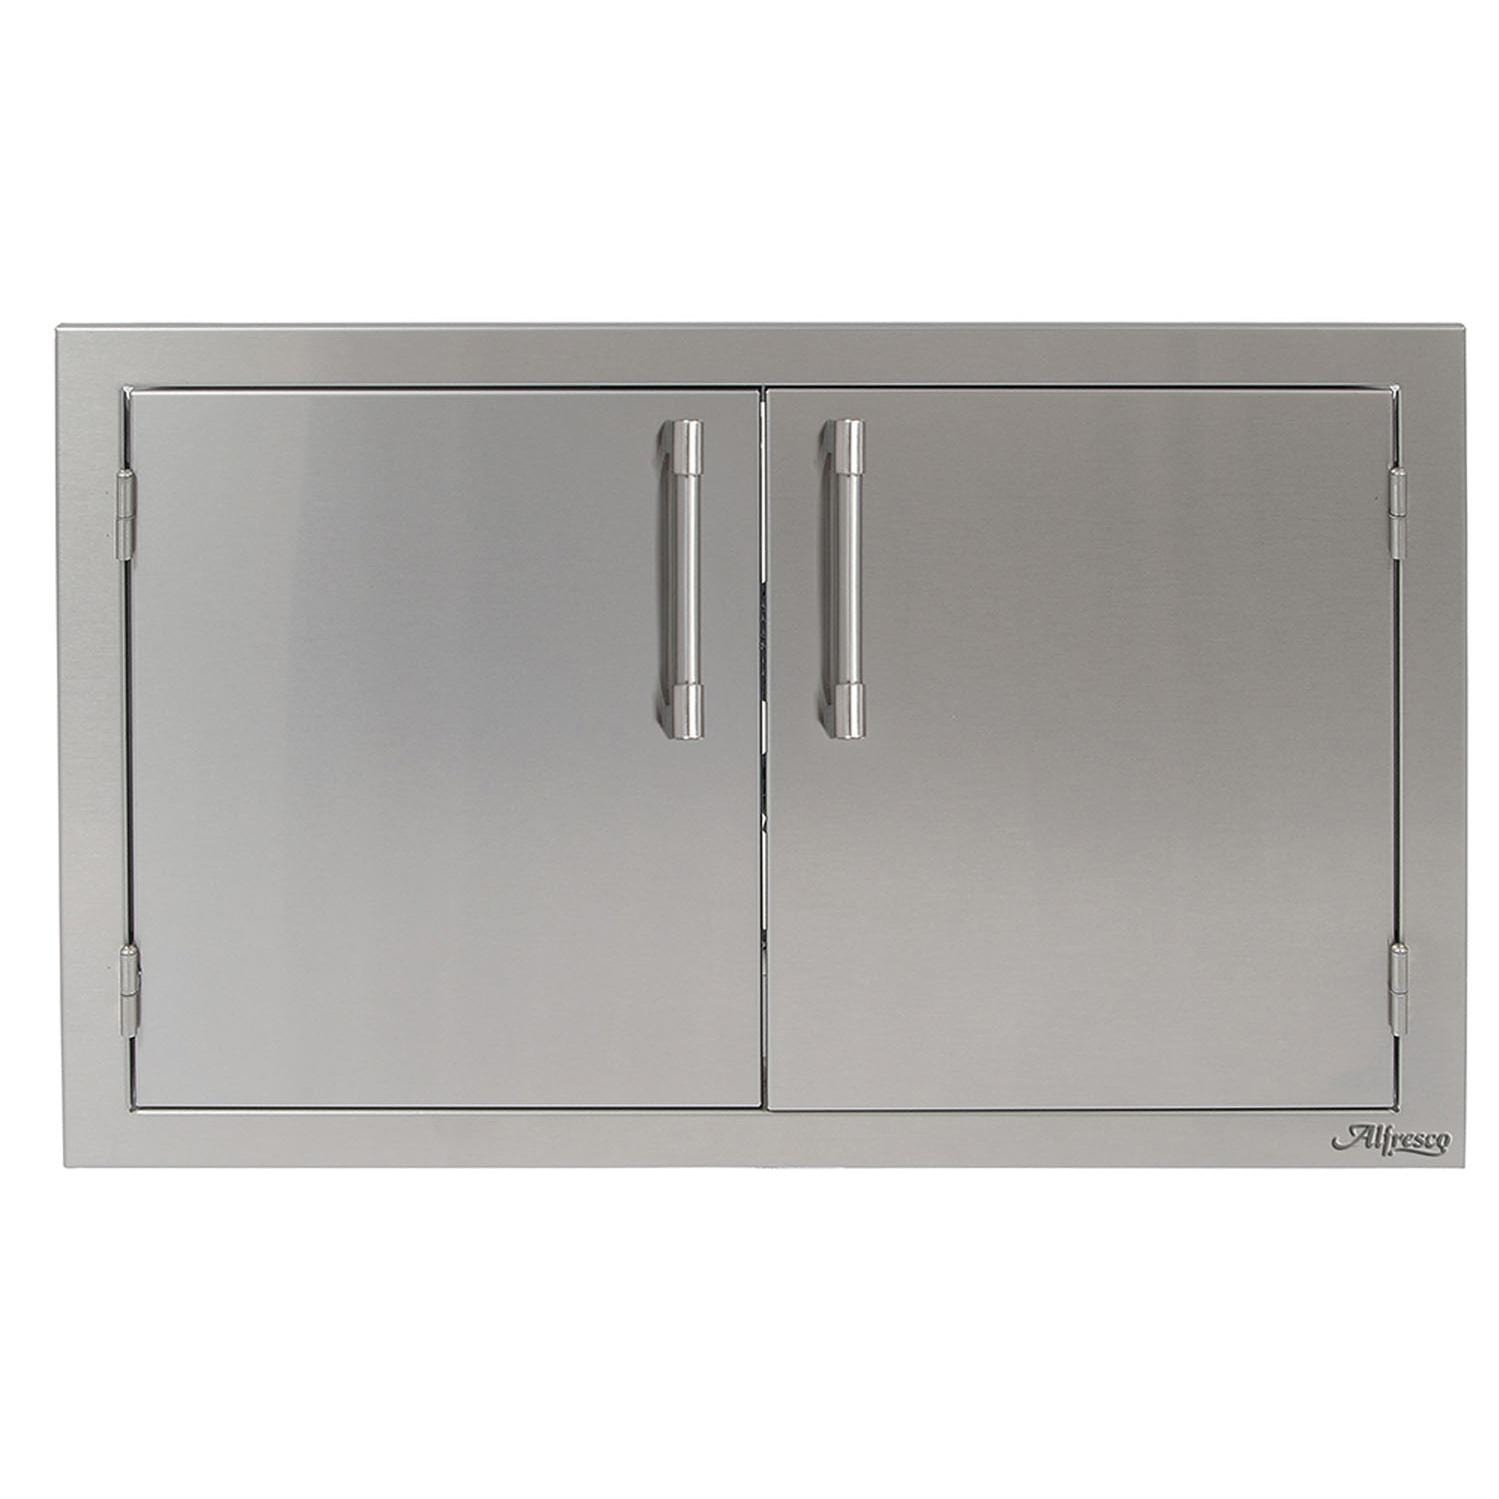 Alfresco 42-Inch Double Access Doors